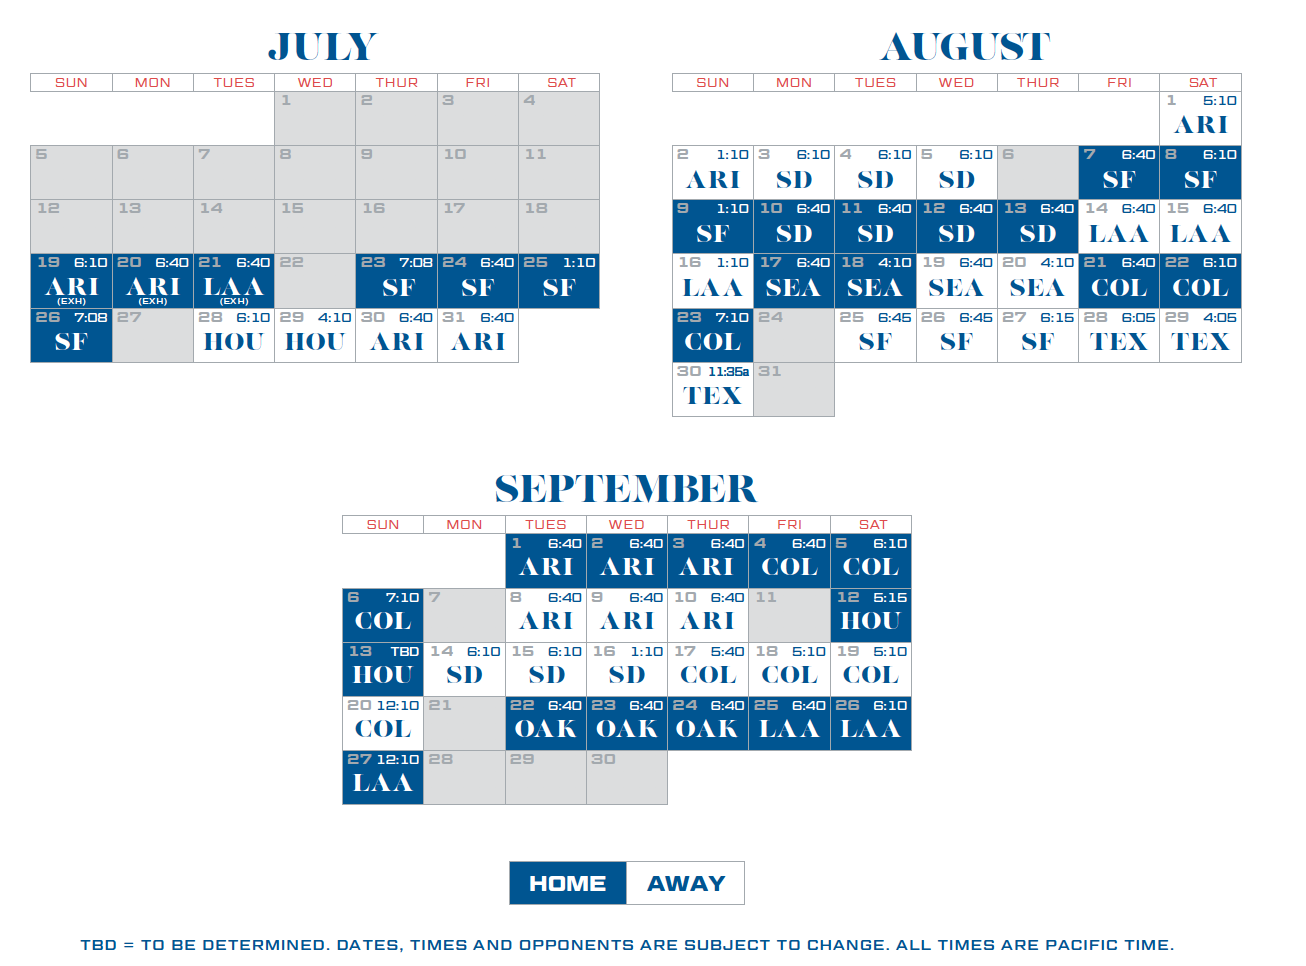 Dodgers Calendar Schedule 2021 Dodgers announce 2020 schedule. Dodgers' 60 game schedule begins